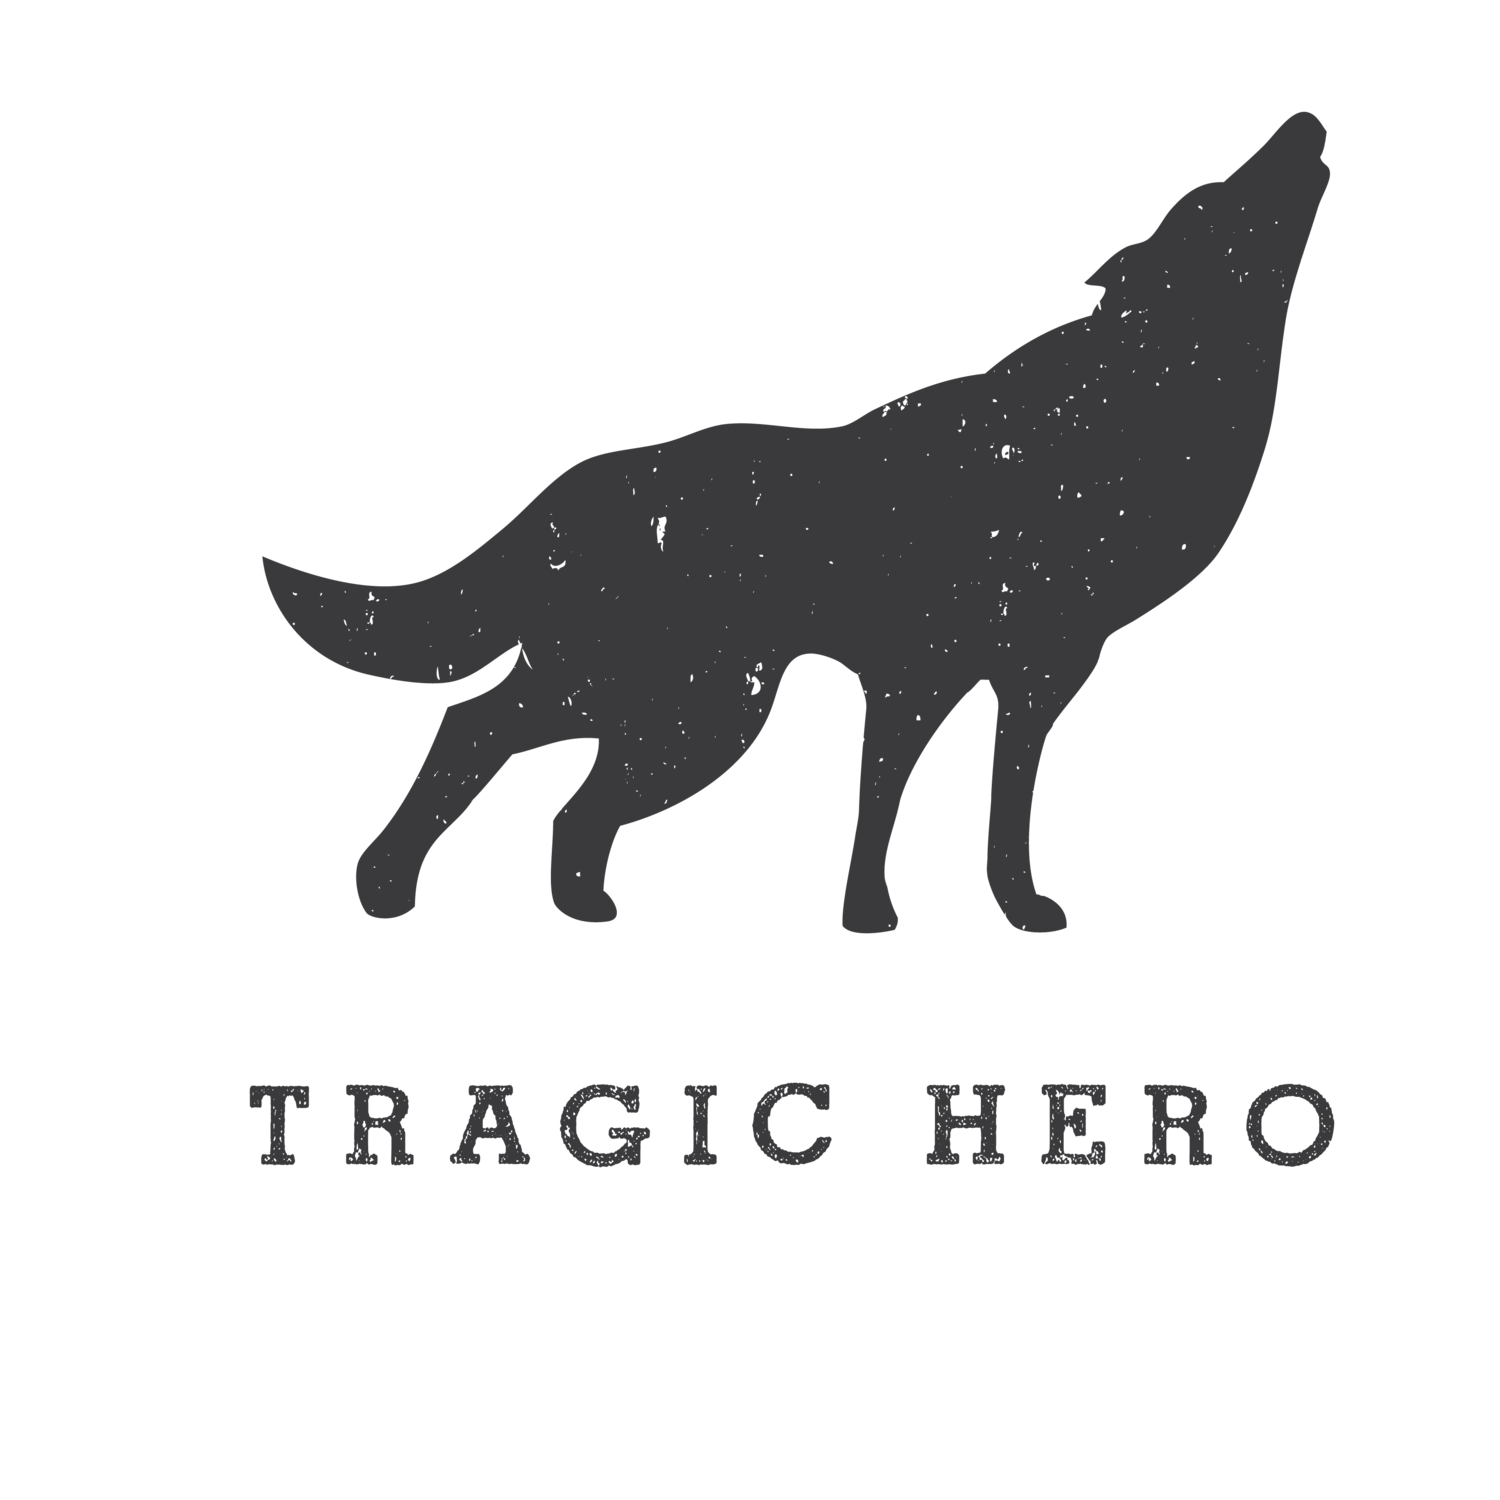 What makes a Hero tragic for you (opinion)?